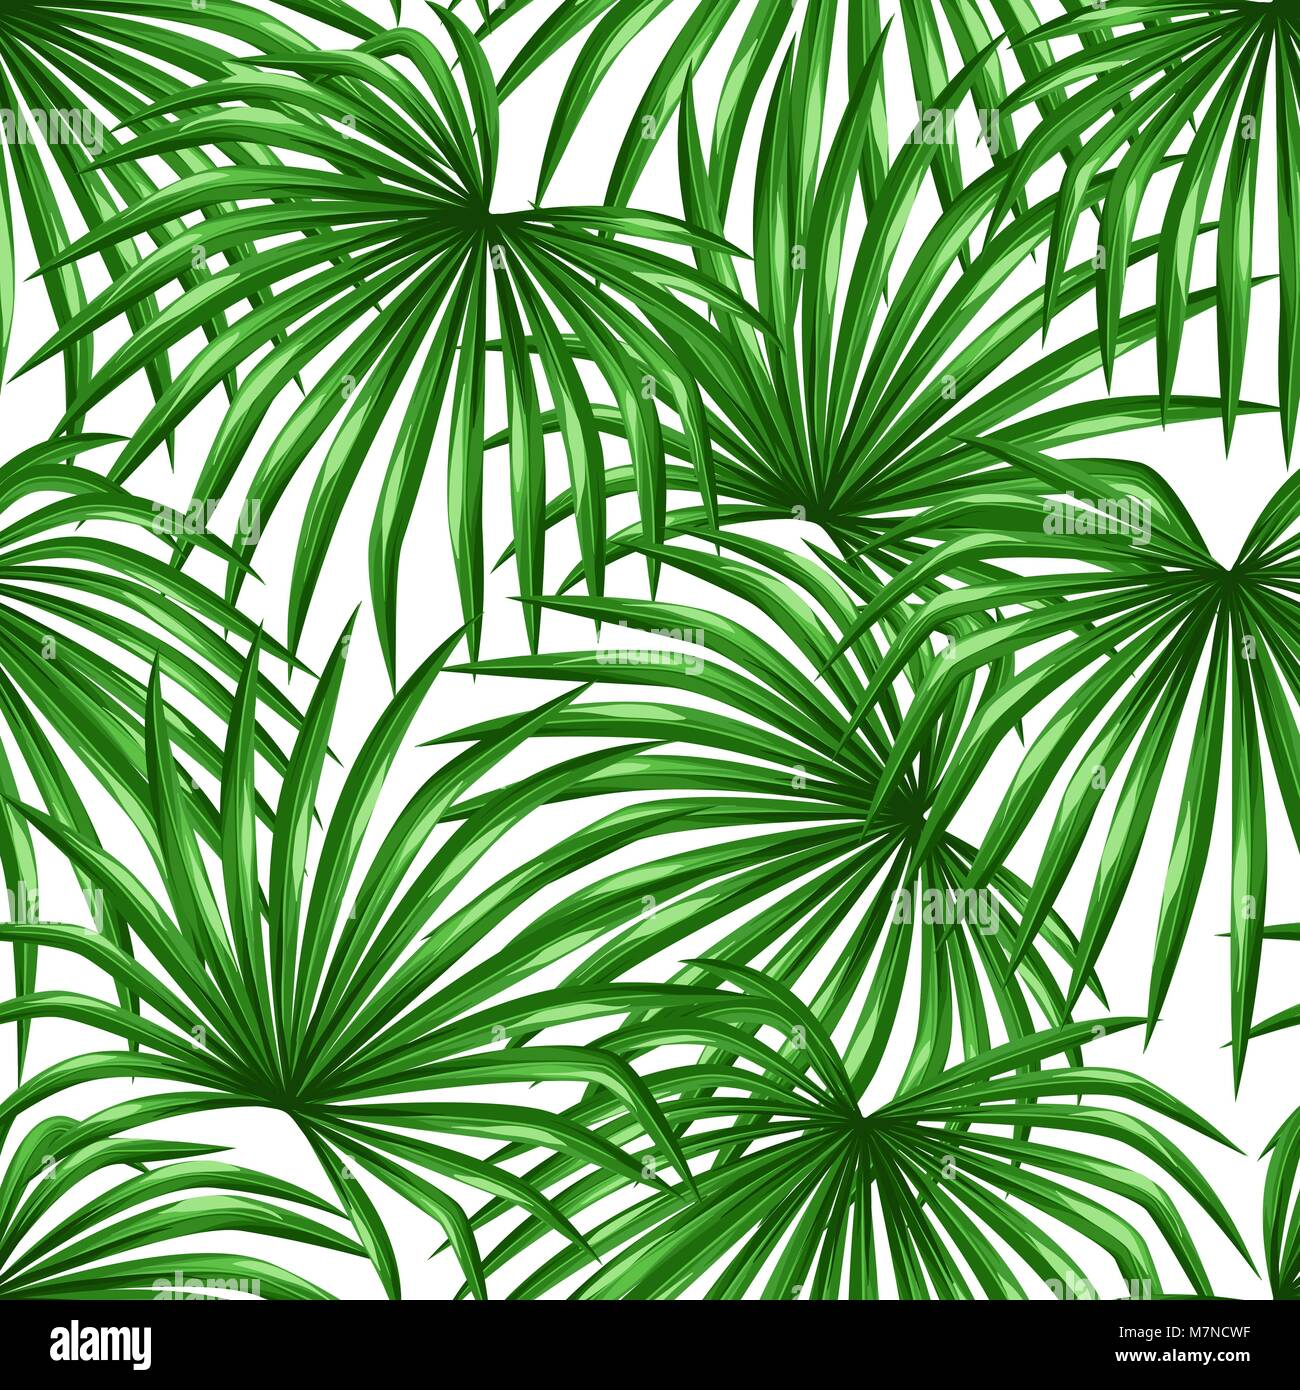 Seamless Pattern With Palms Leaves Decorative Image Tropical Leaf Of Stock Vector Image Art Alamy The tropical plants in this list can be grown indoors in any climate, but many can also be overwintered indoors in cooler climates and then brought outdoors in the summer. https www alamy com stock photo seamless pattern with palms leaves decorative image tropical leaf 176877387 html